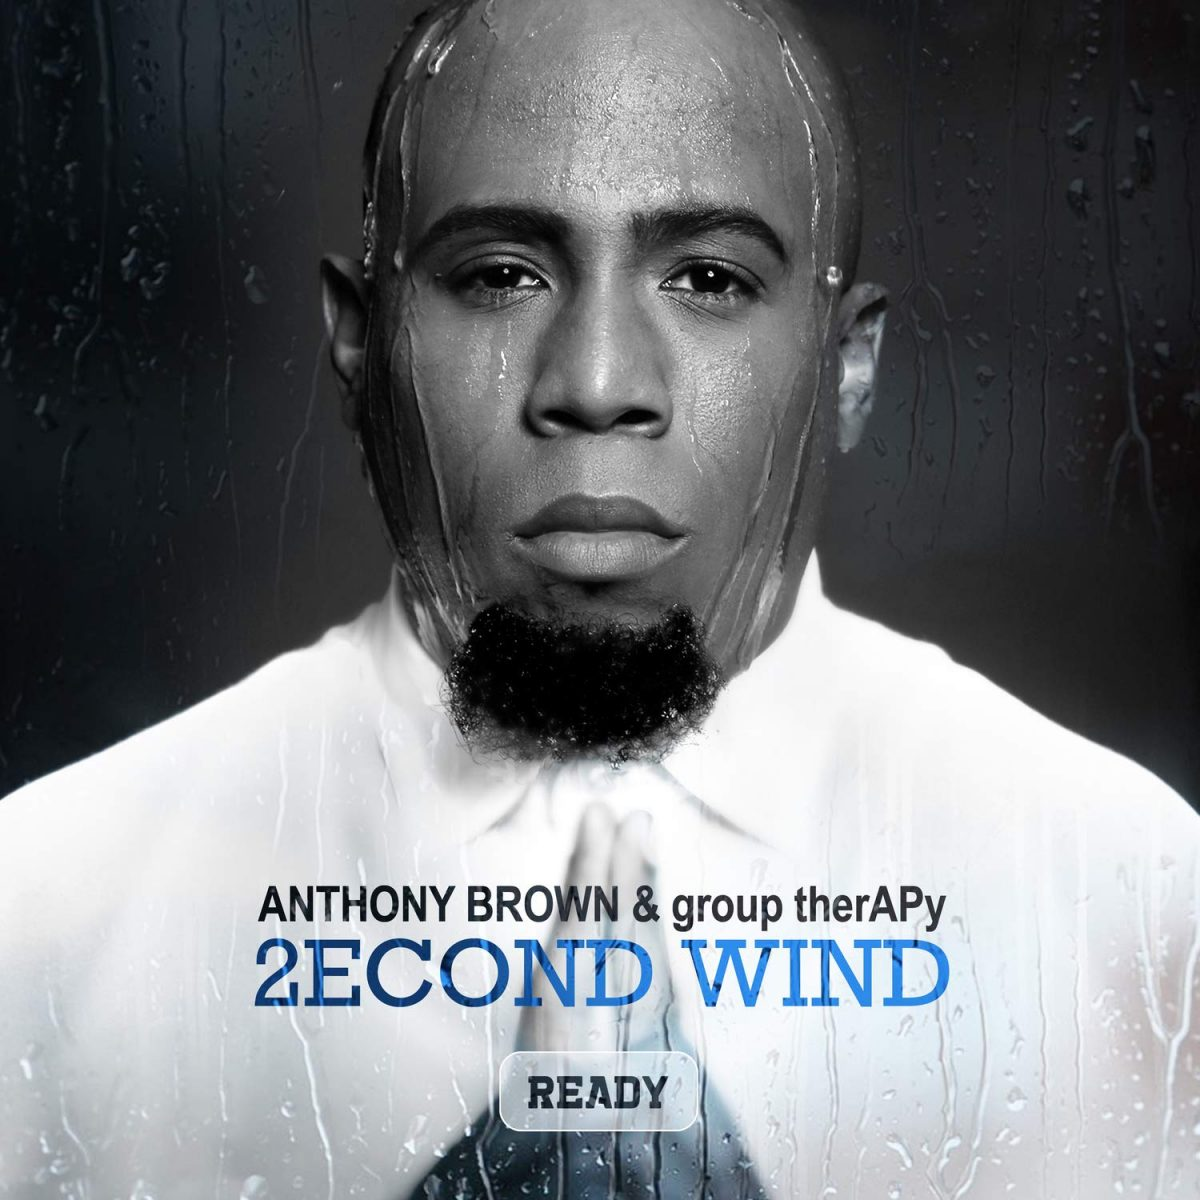 2econd Wind by Anthony Brown & group therAPy